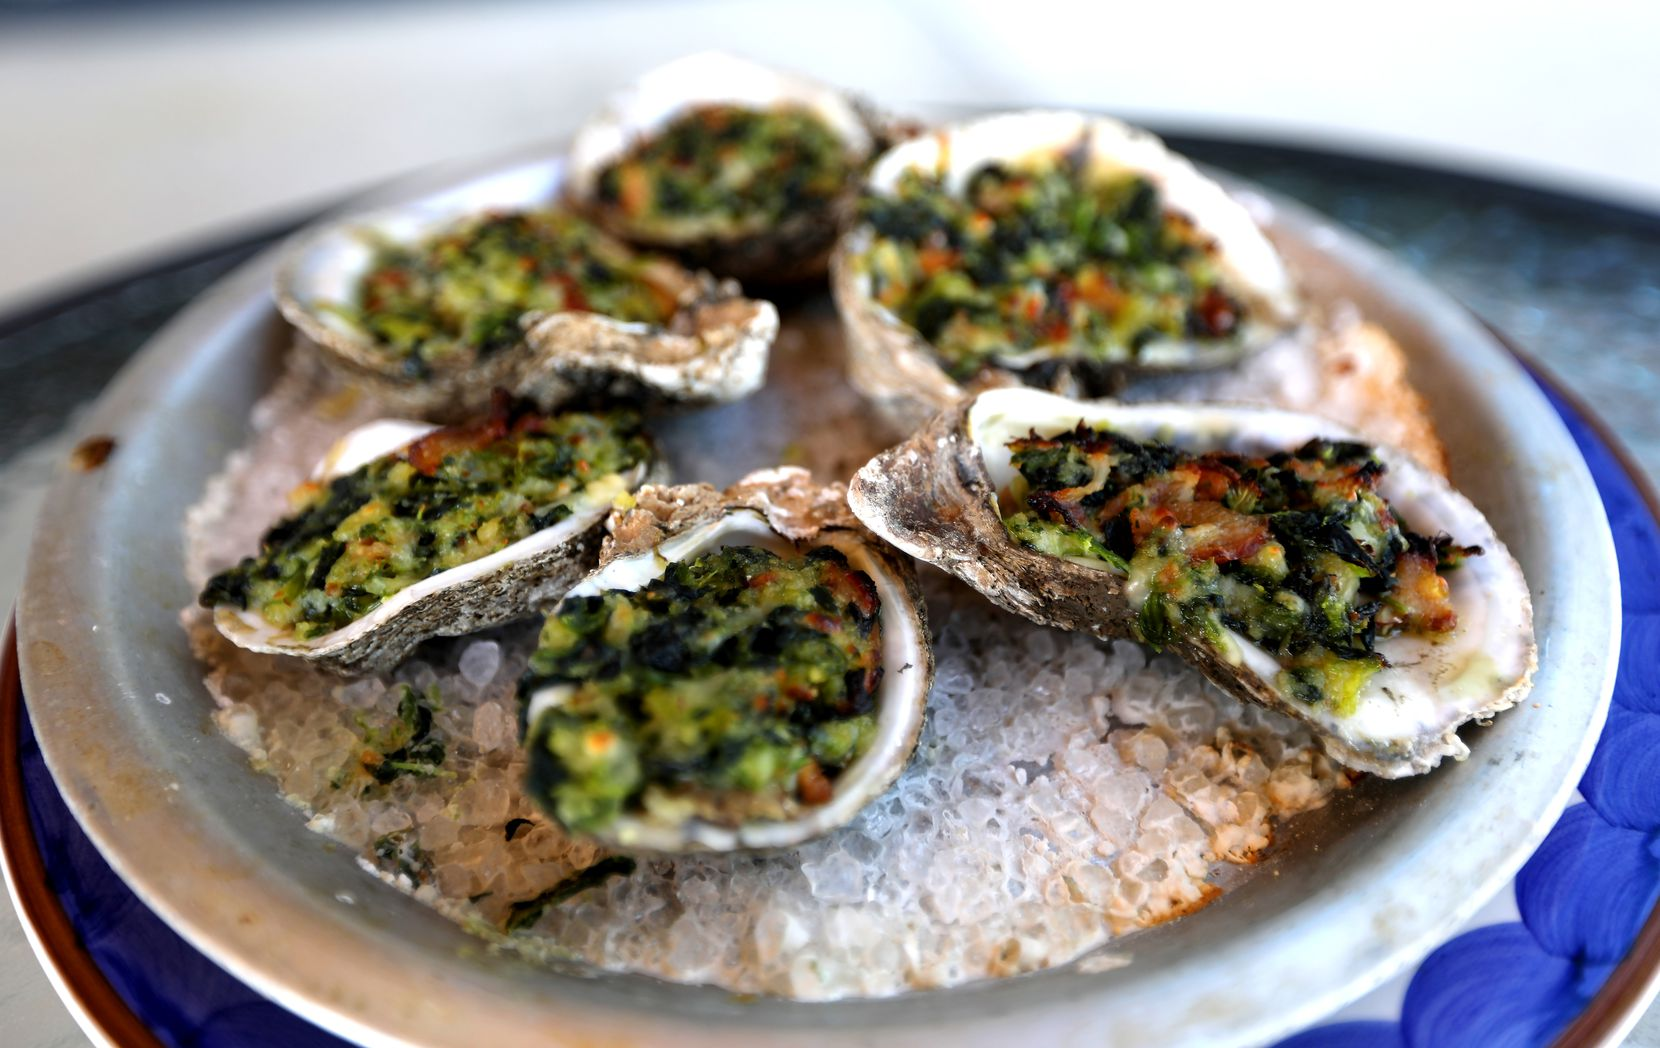 Of course, Bongo Beaux's has seafood on its menu. Here's the Gulf Oysters baked with spinach, bacon, herbs and parmesan.